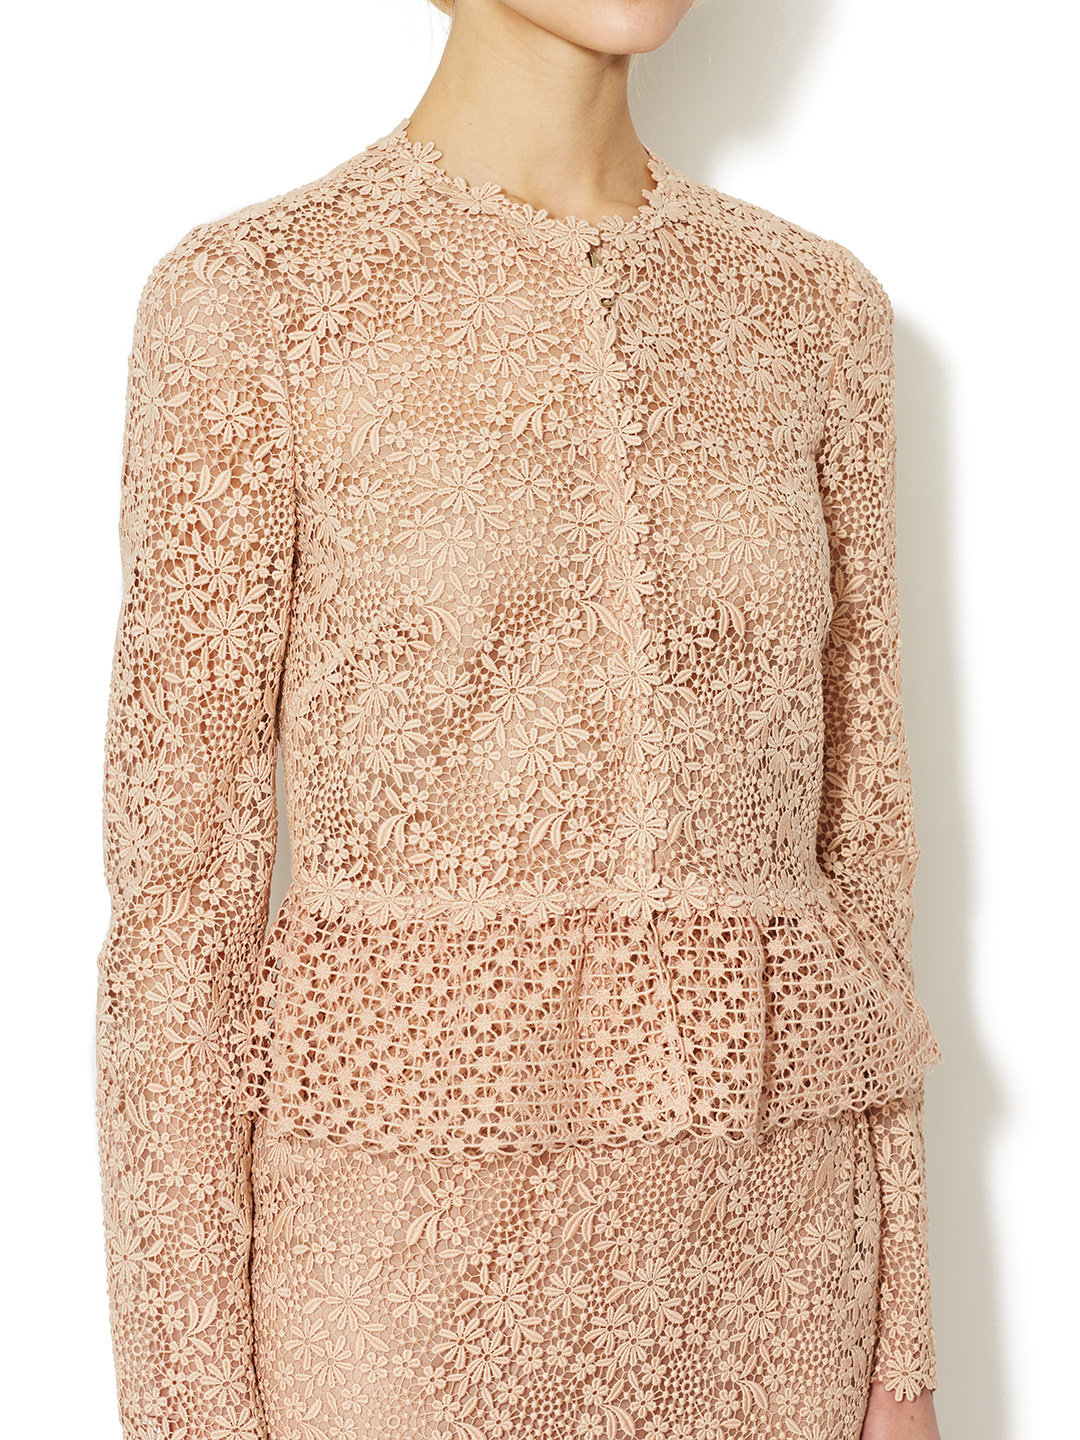 Valentino Embroidered Lace Jacket.jpg